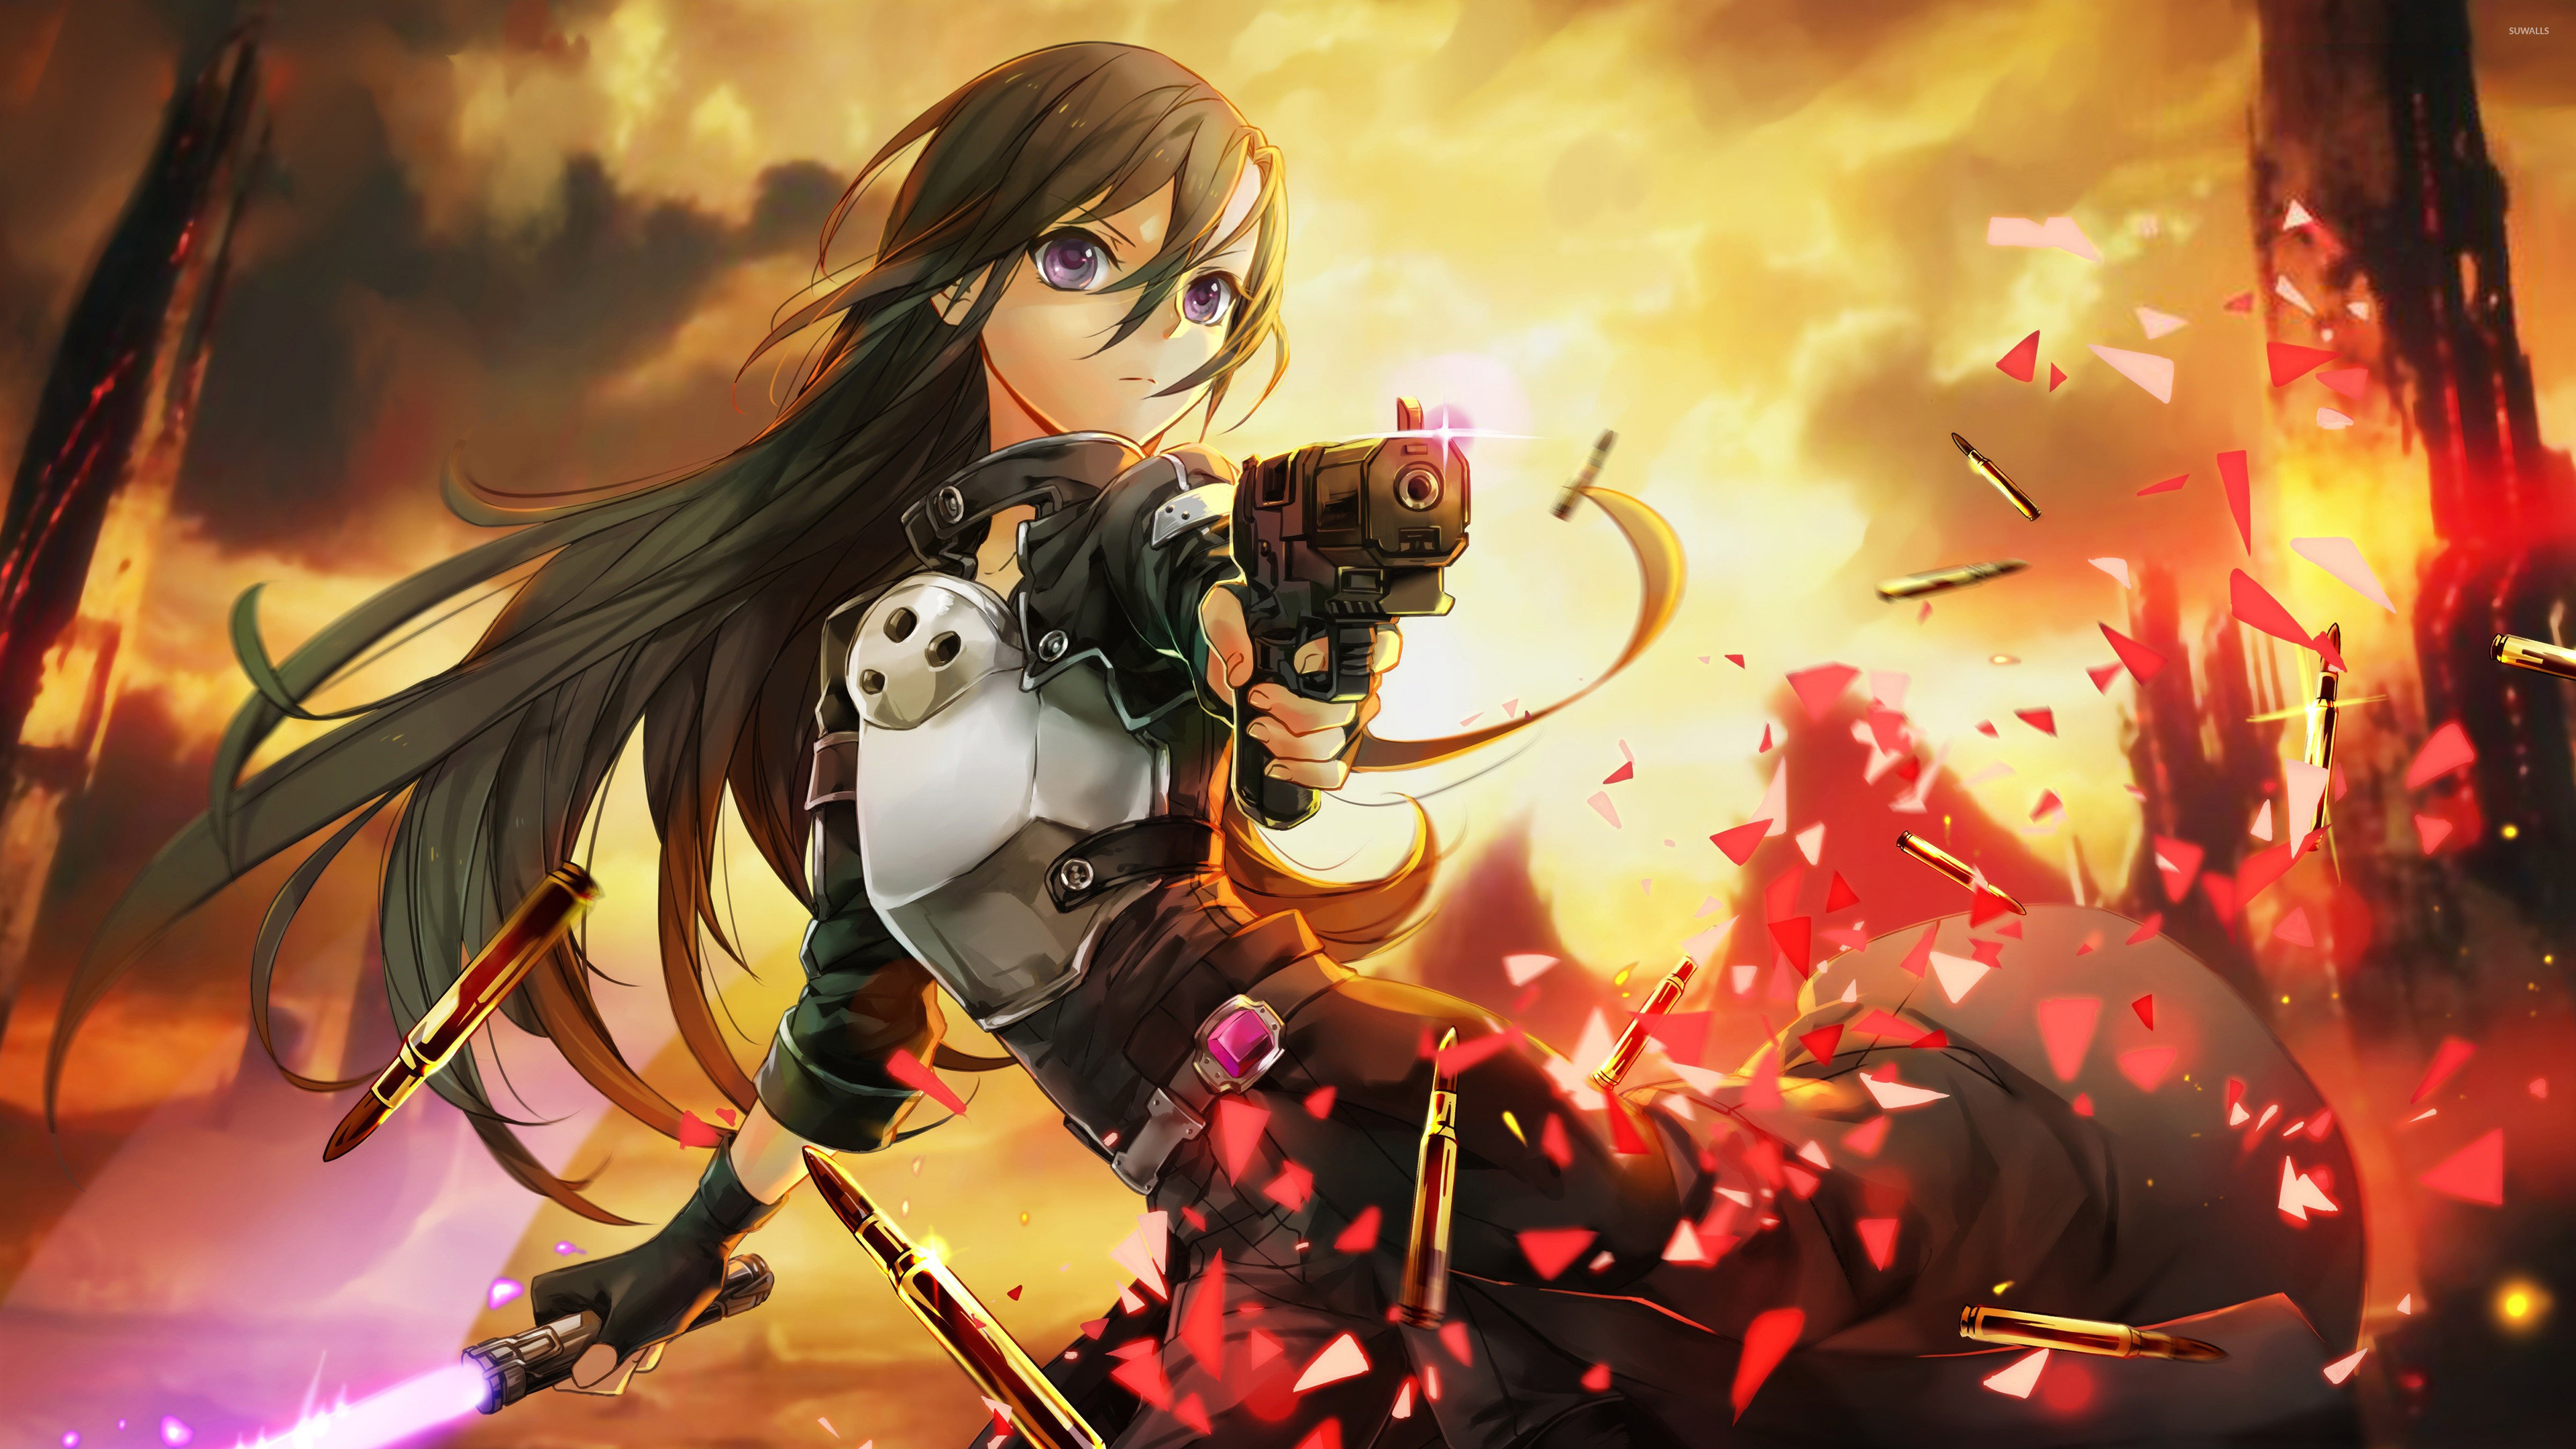 asuna - sword art online wallpaper - anime wallpapers - #45836